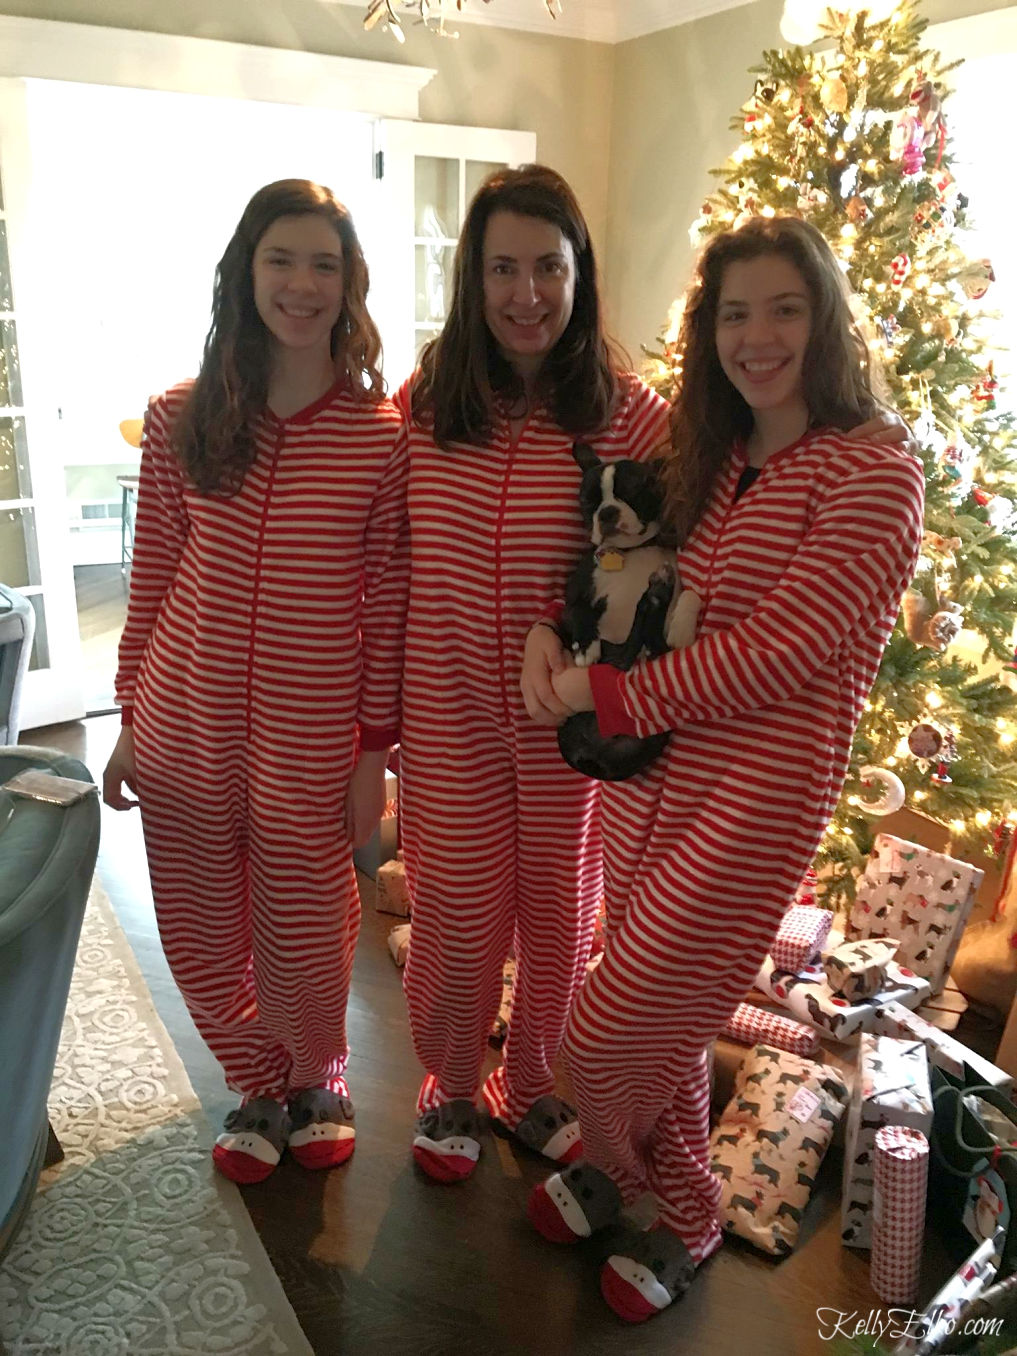 Start a fun family tradition with matching Christmas pajamas for the whole family kellyelko.com #christmas #christmaspajamas #christmastraditions